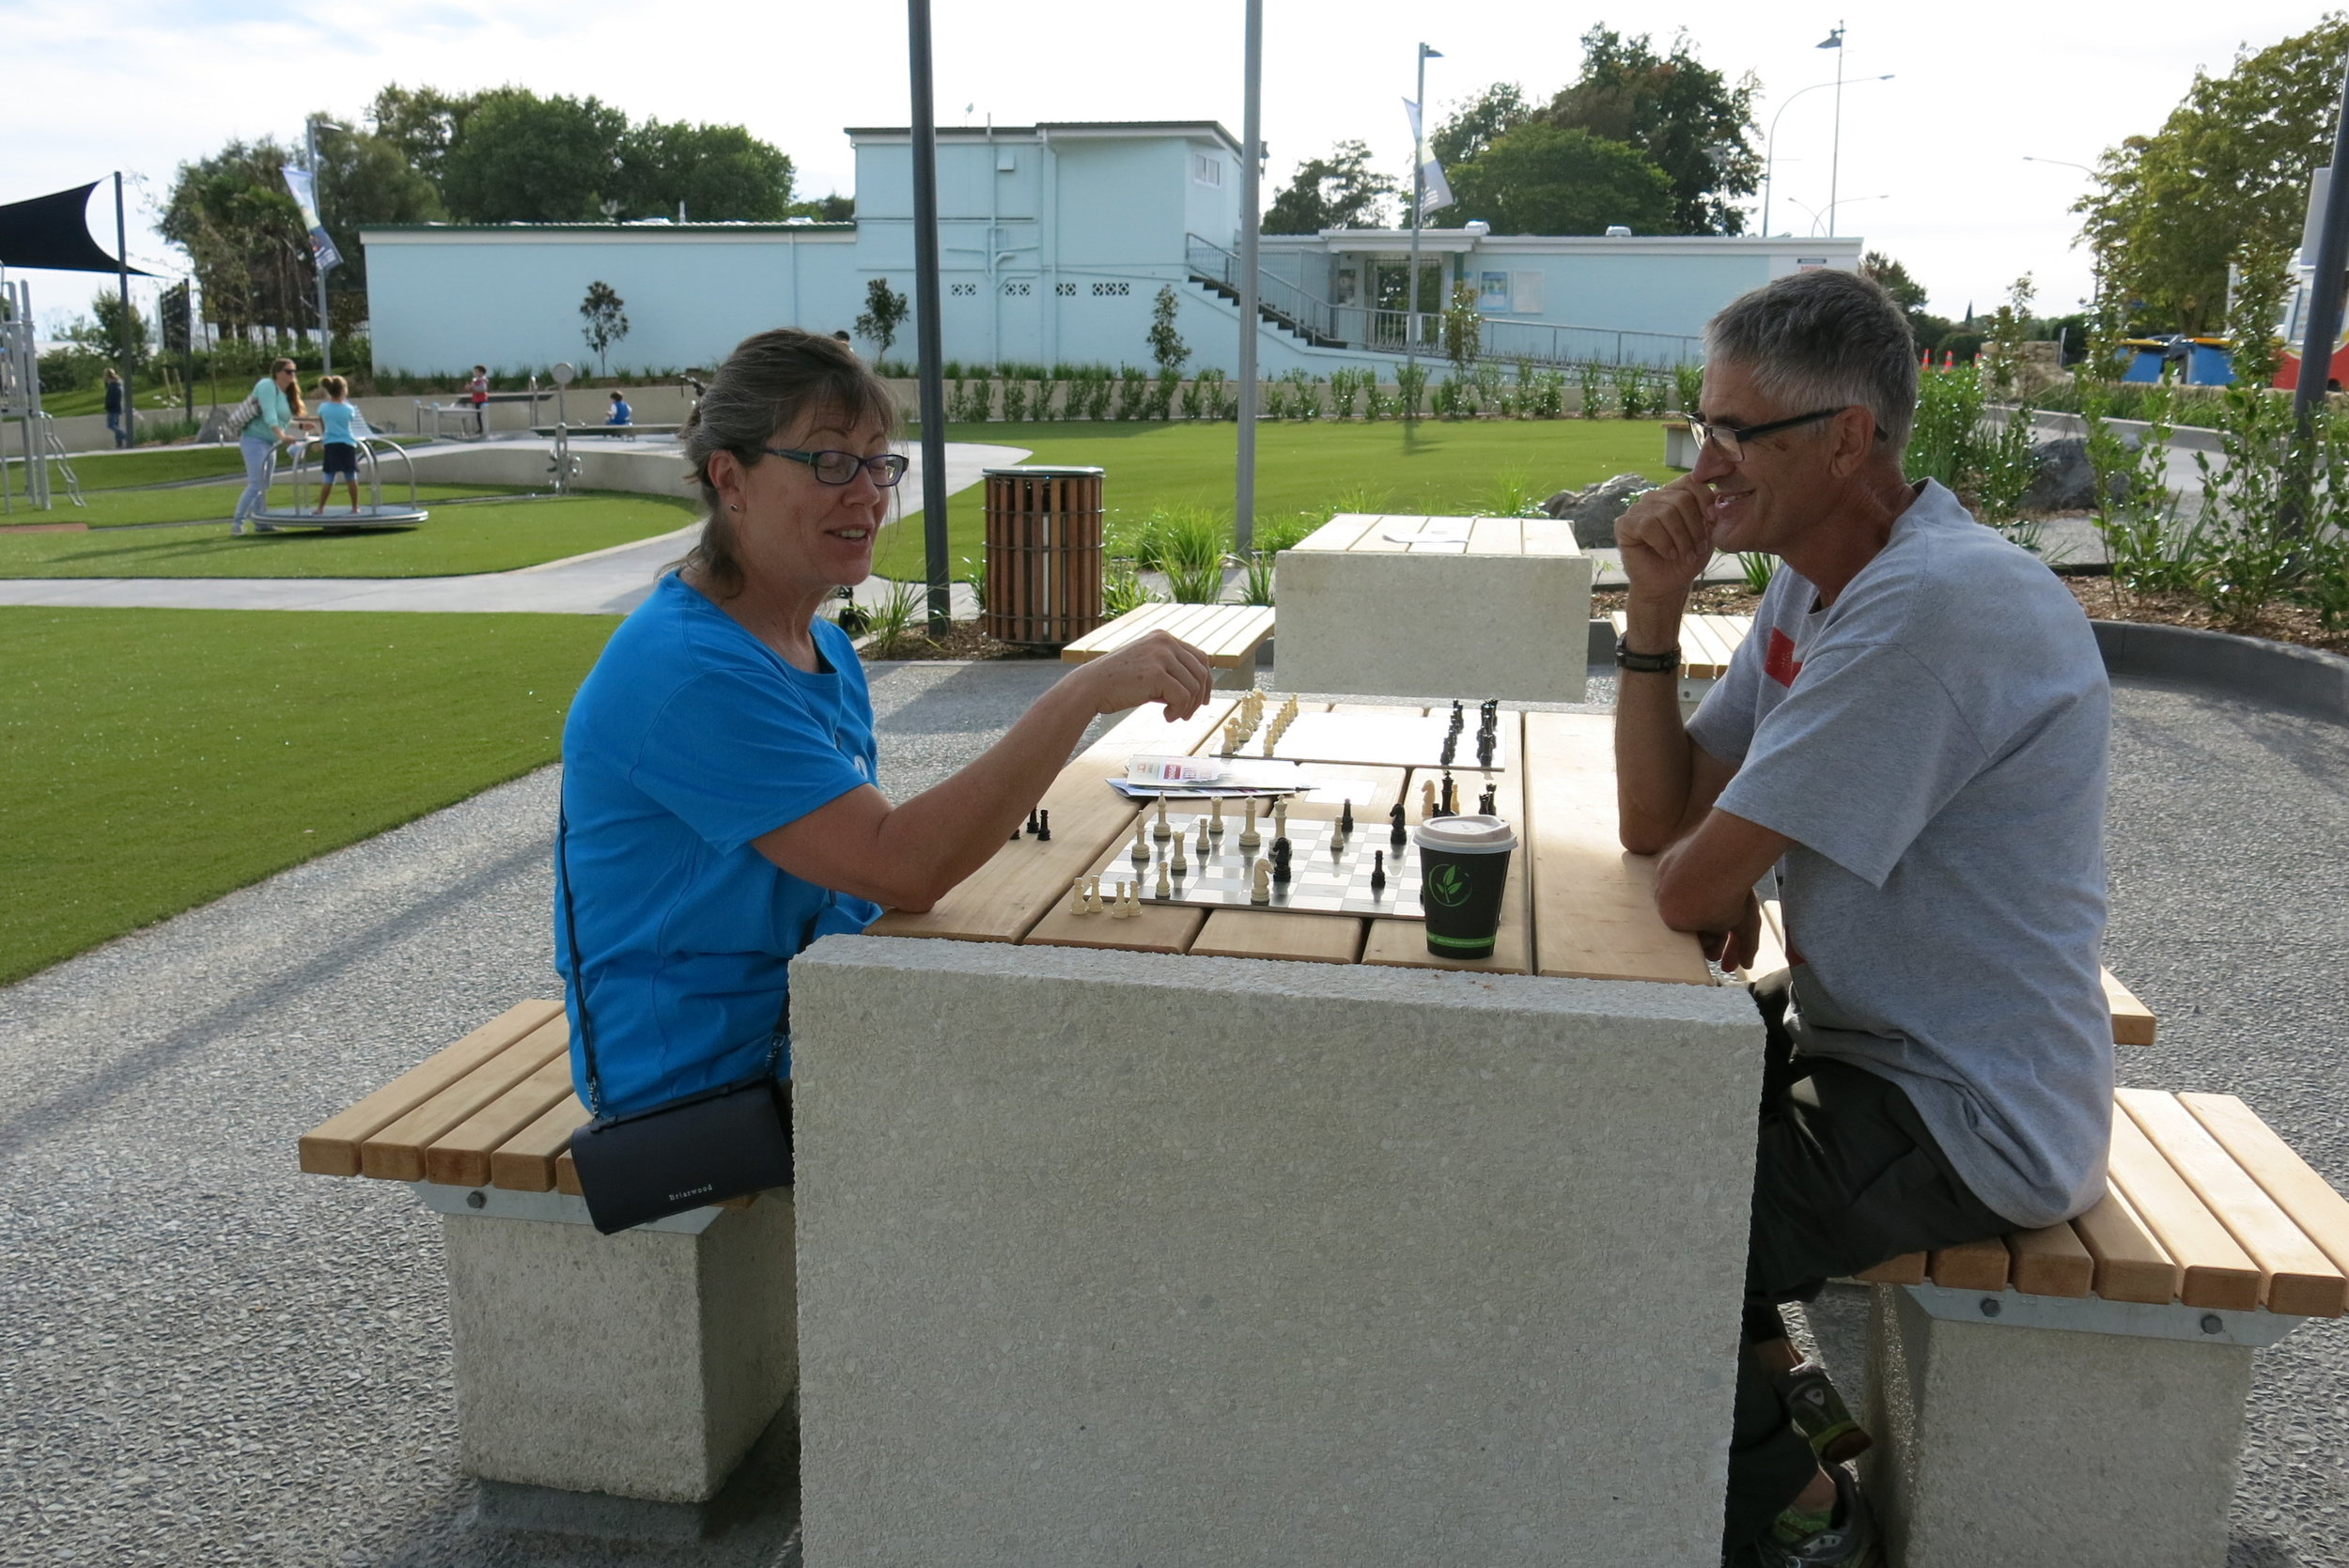 As well as the usual children's play equipment the Village Green includes ares for chess and table tennis.